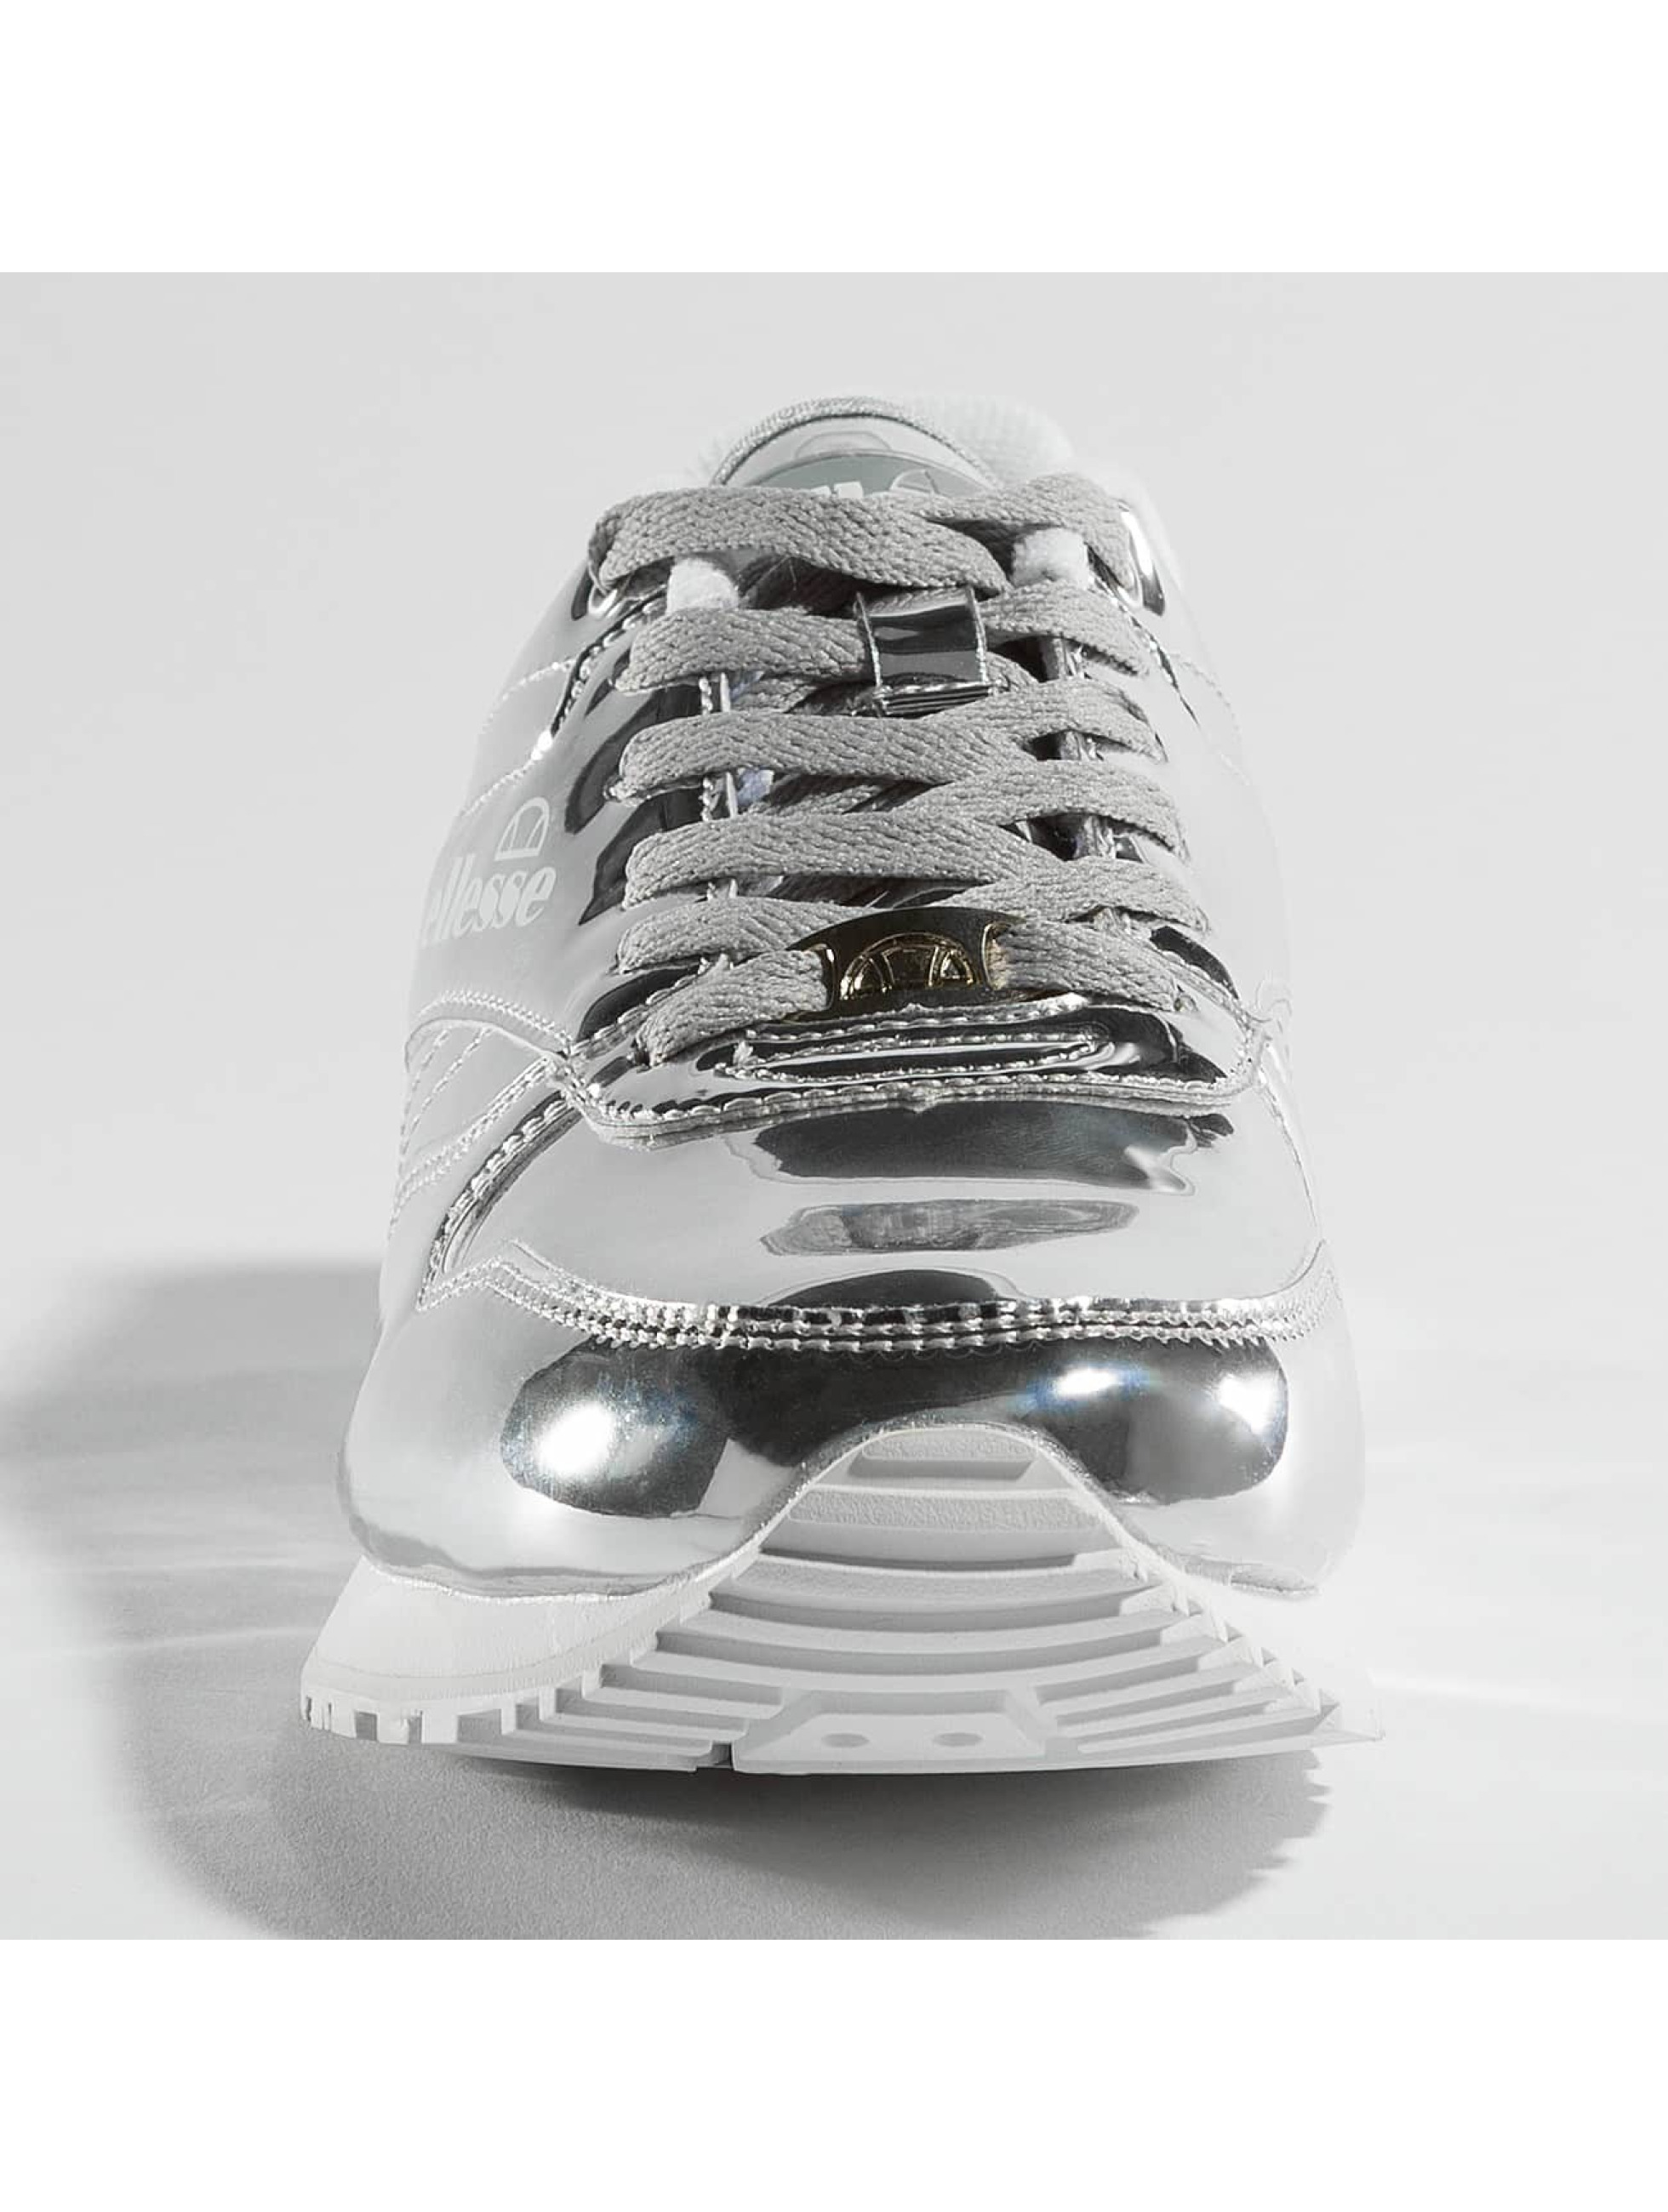 Ellesse Zapatillas de deporte Heritage City Runner Metallic Runner plata